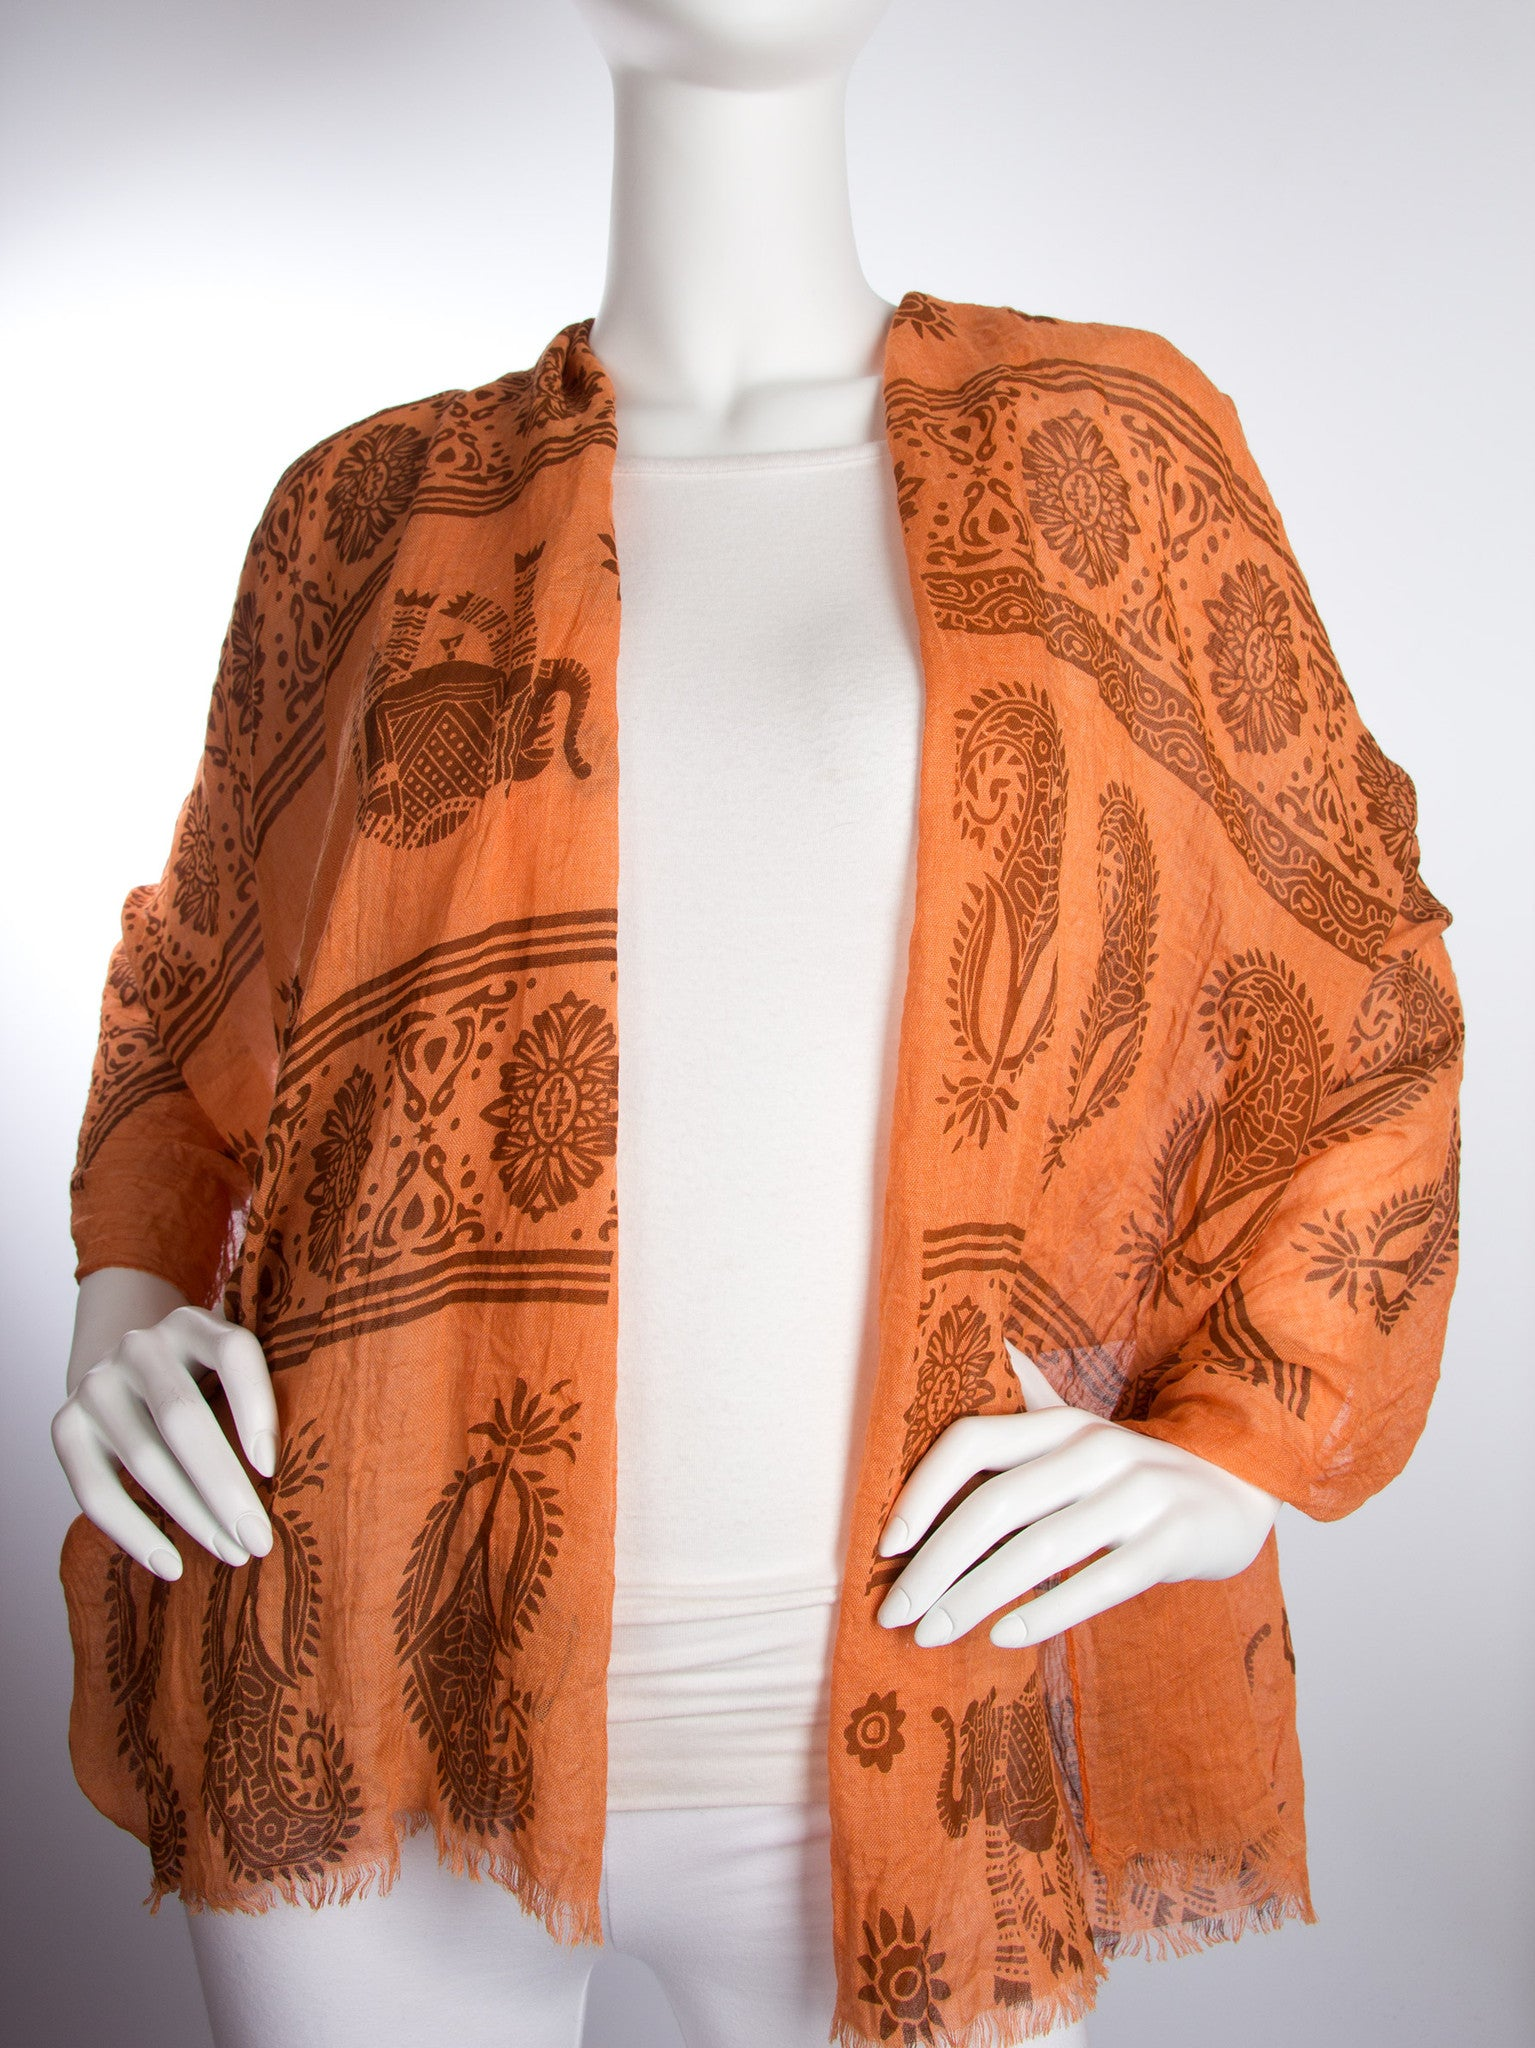 Scarves - Gajai Shawl,100% Cotton Paisley Indian Elephant Print Scarf -() Bohomonde  - 8